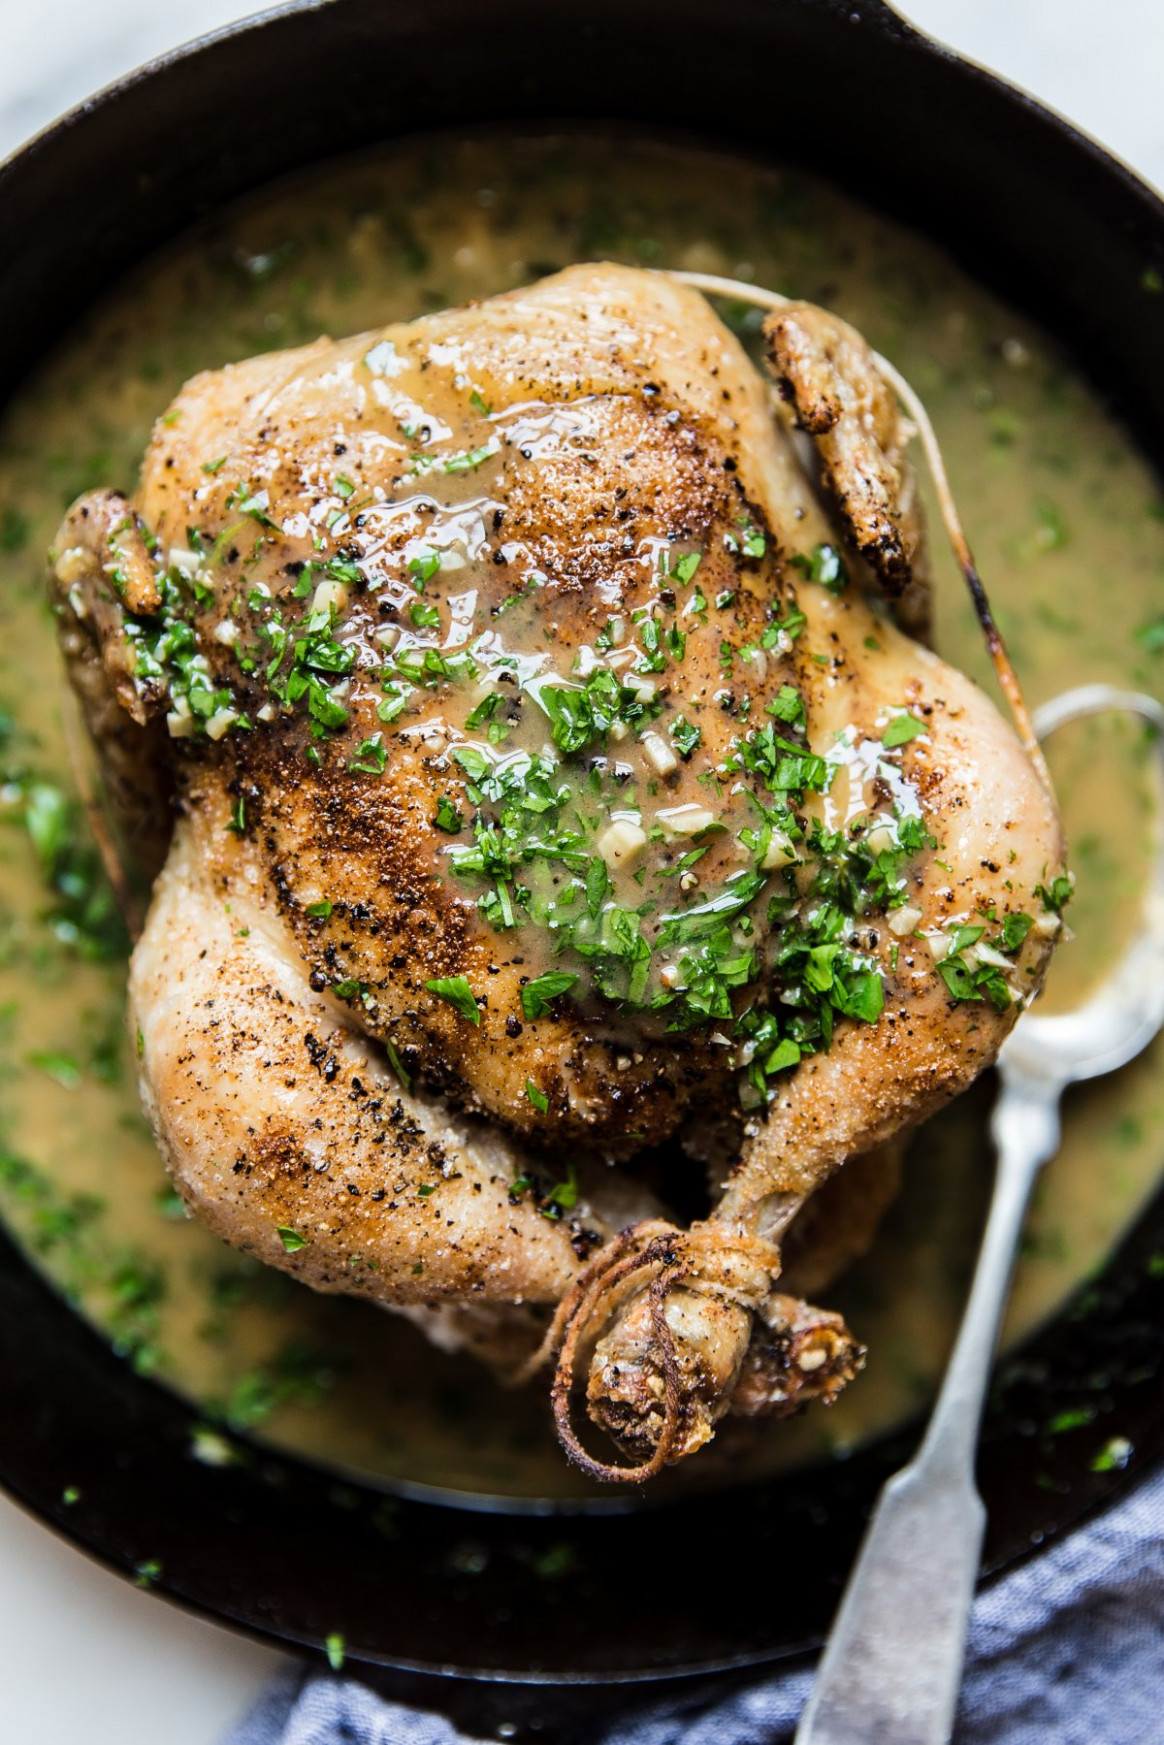 Perfect Roast Chicken with Lemon Herb Pan Sauce - recipes with whole chicken